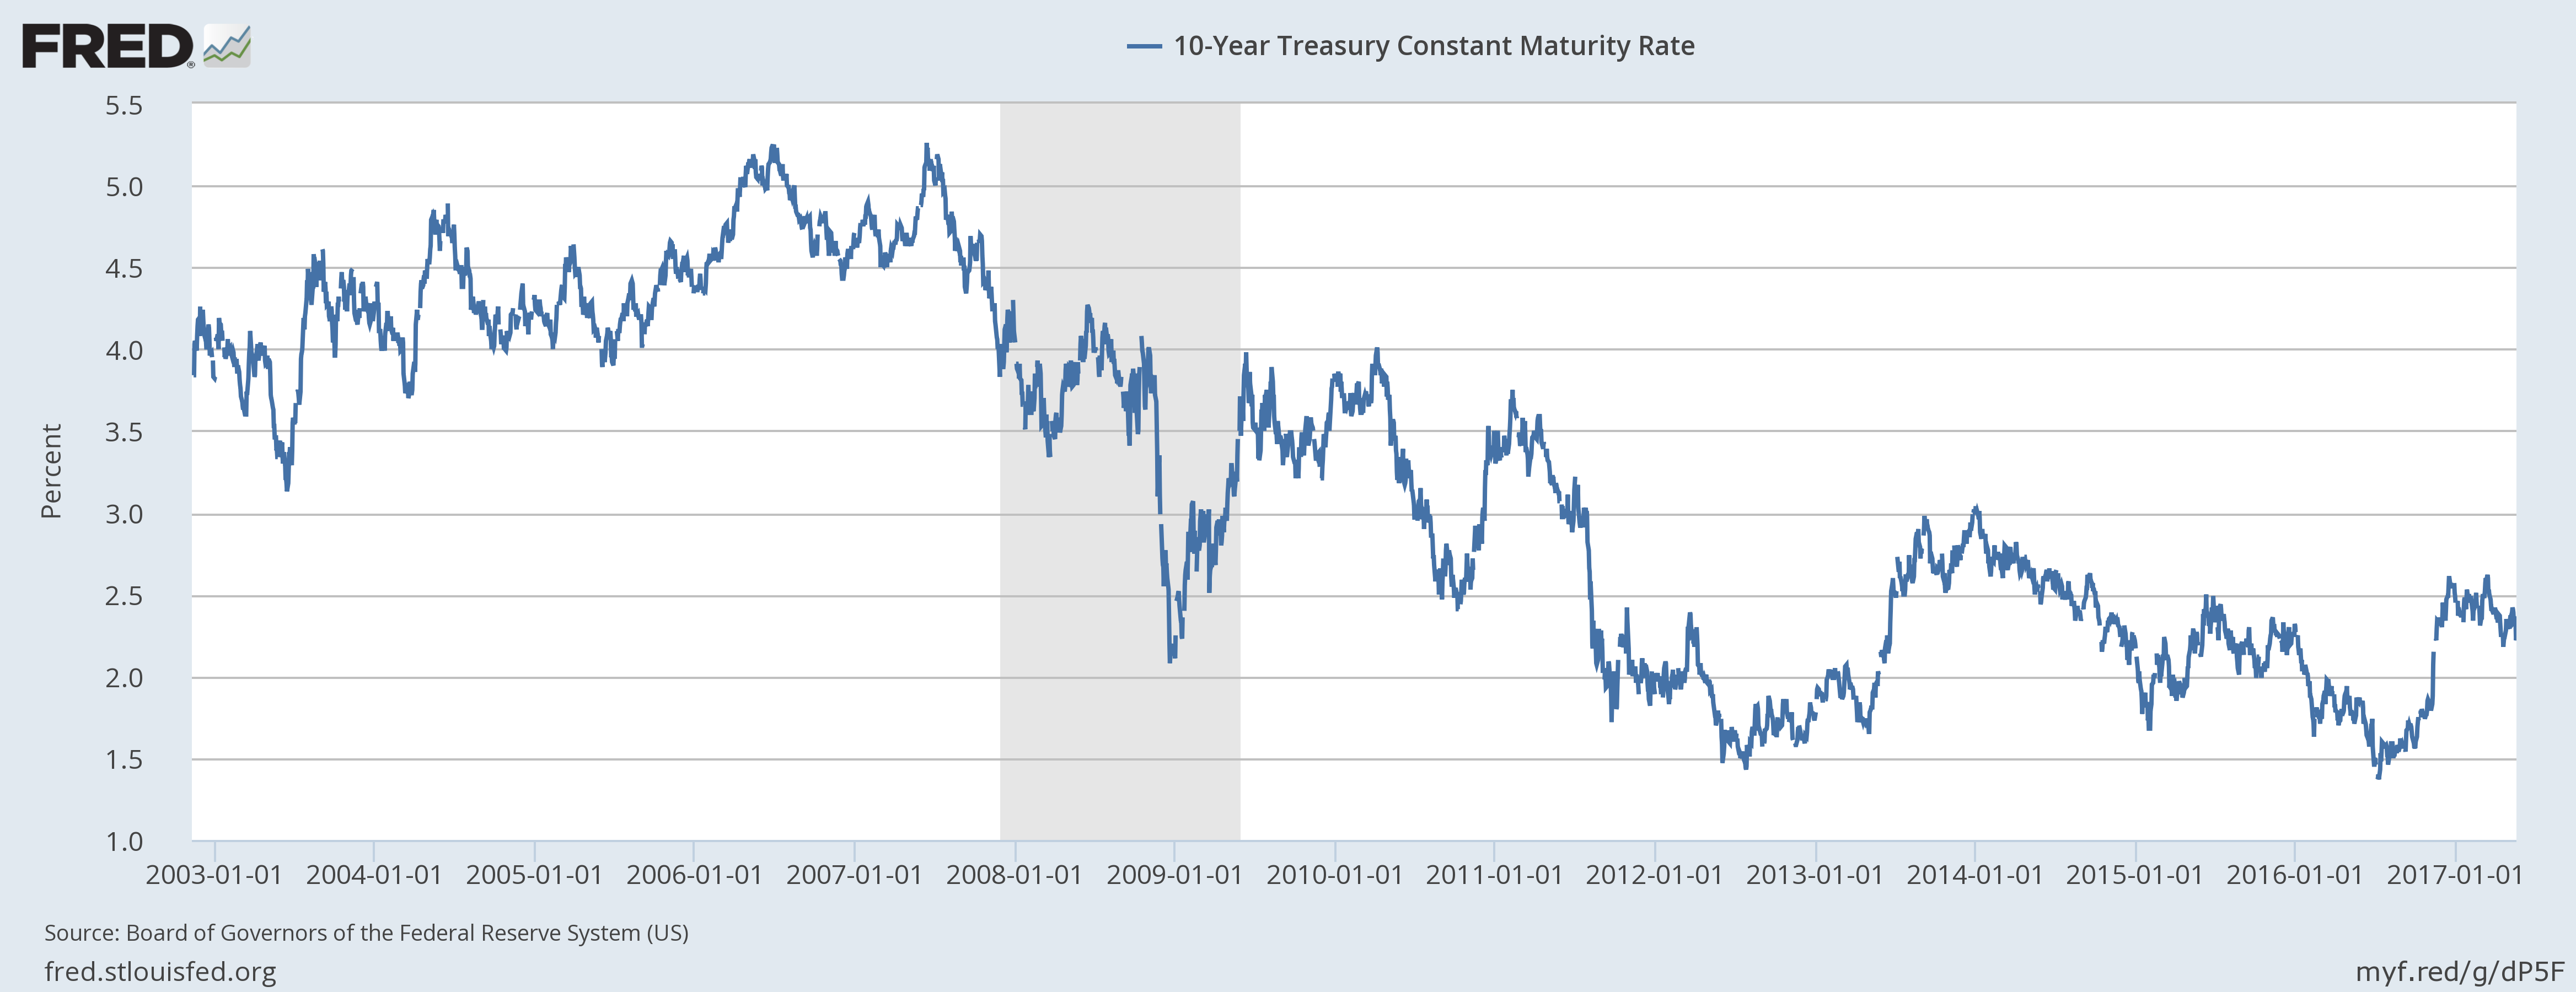 10 - Year Treasury Constant Maturity Rate, January 2003 - May 2017